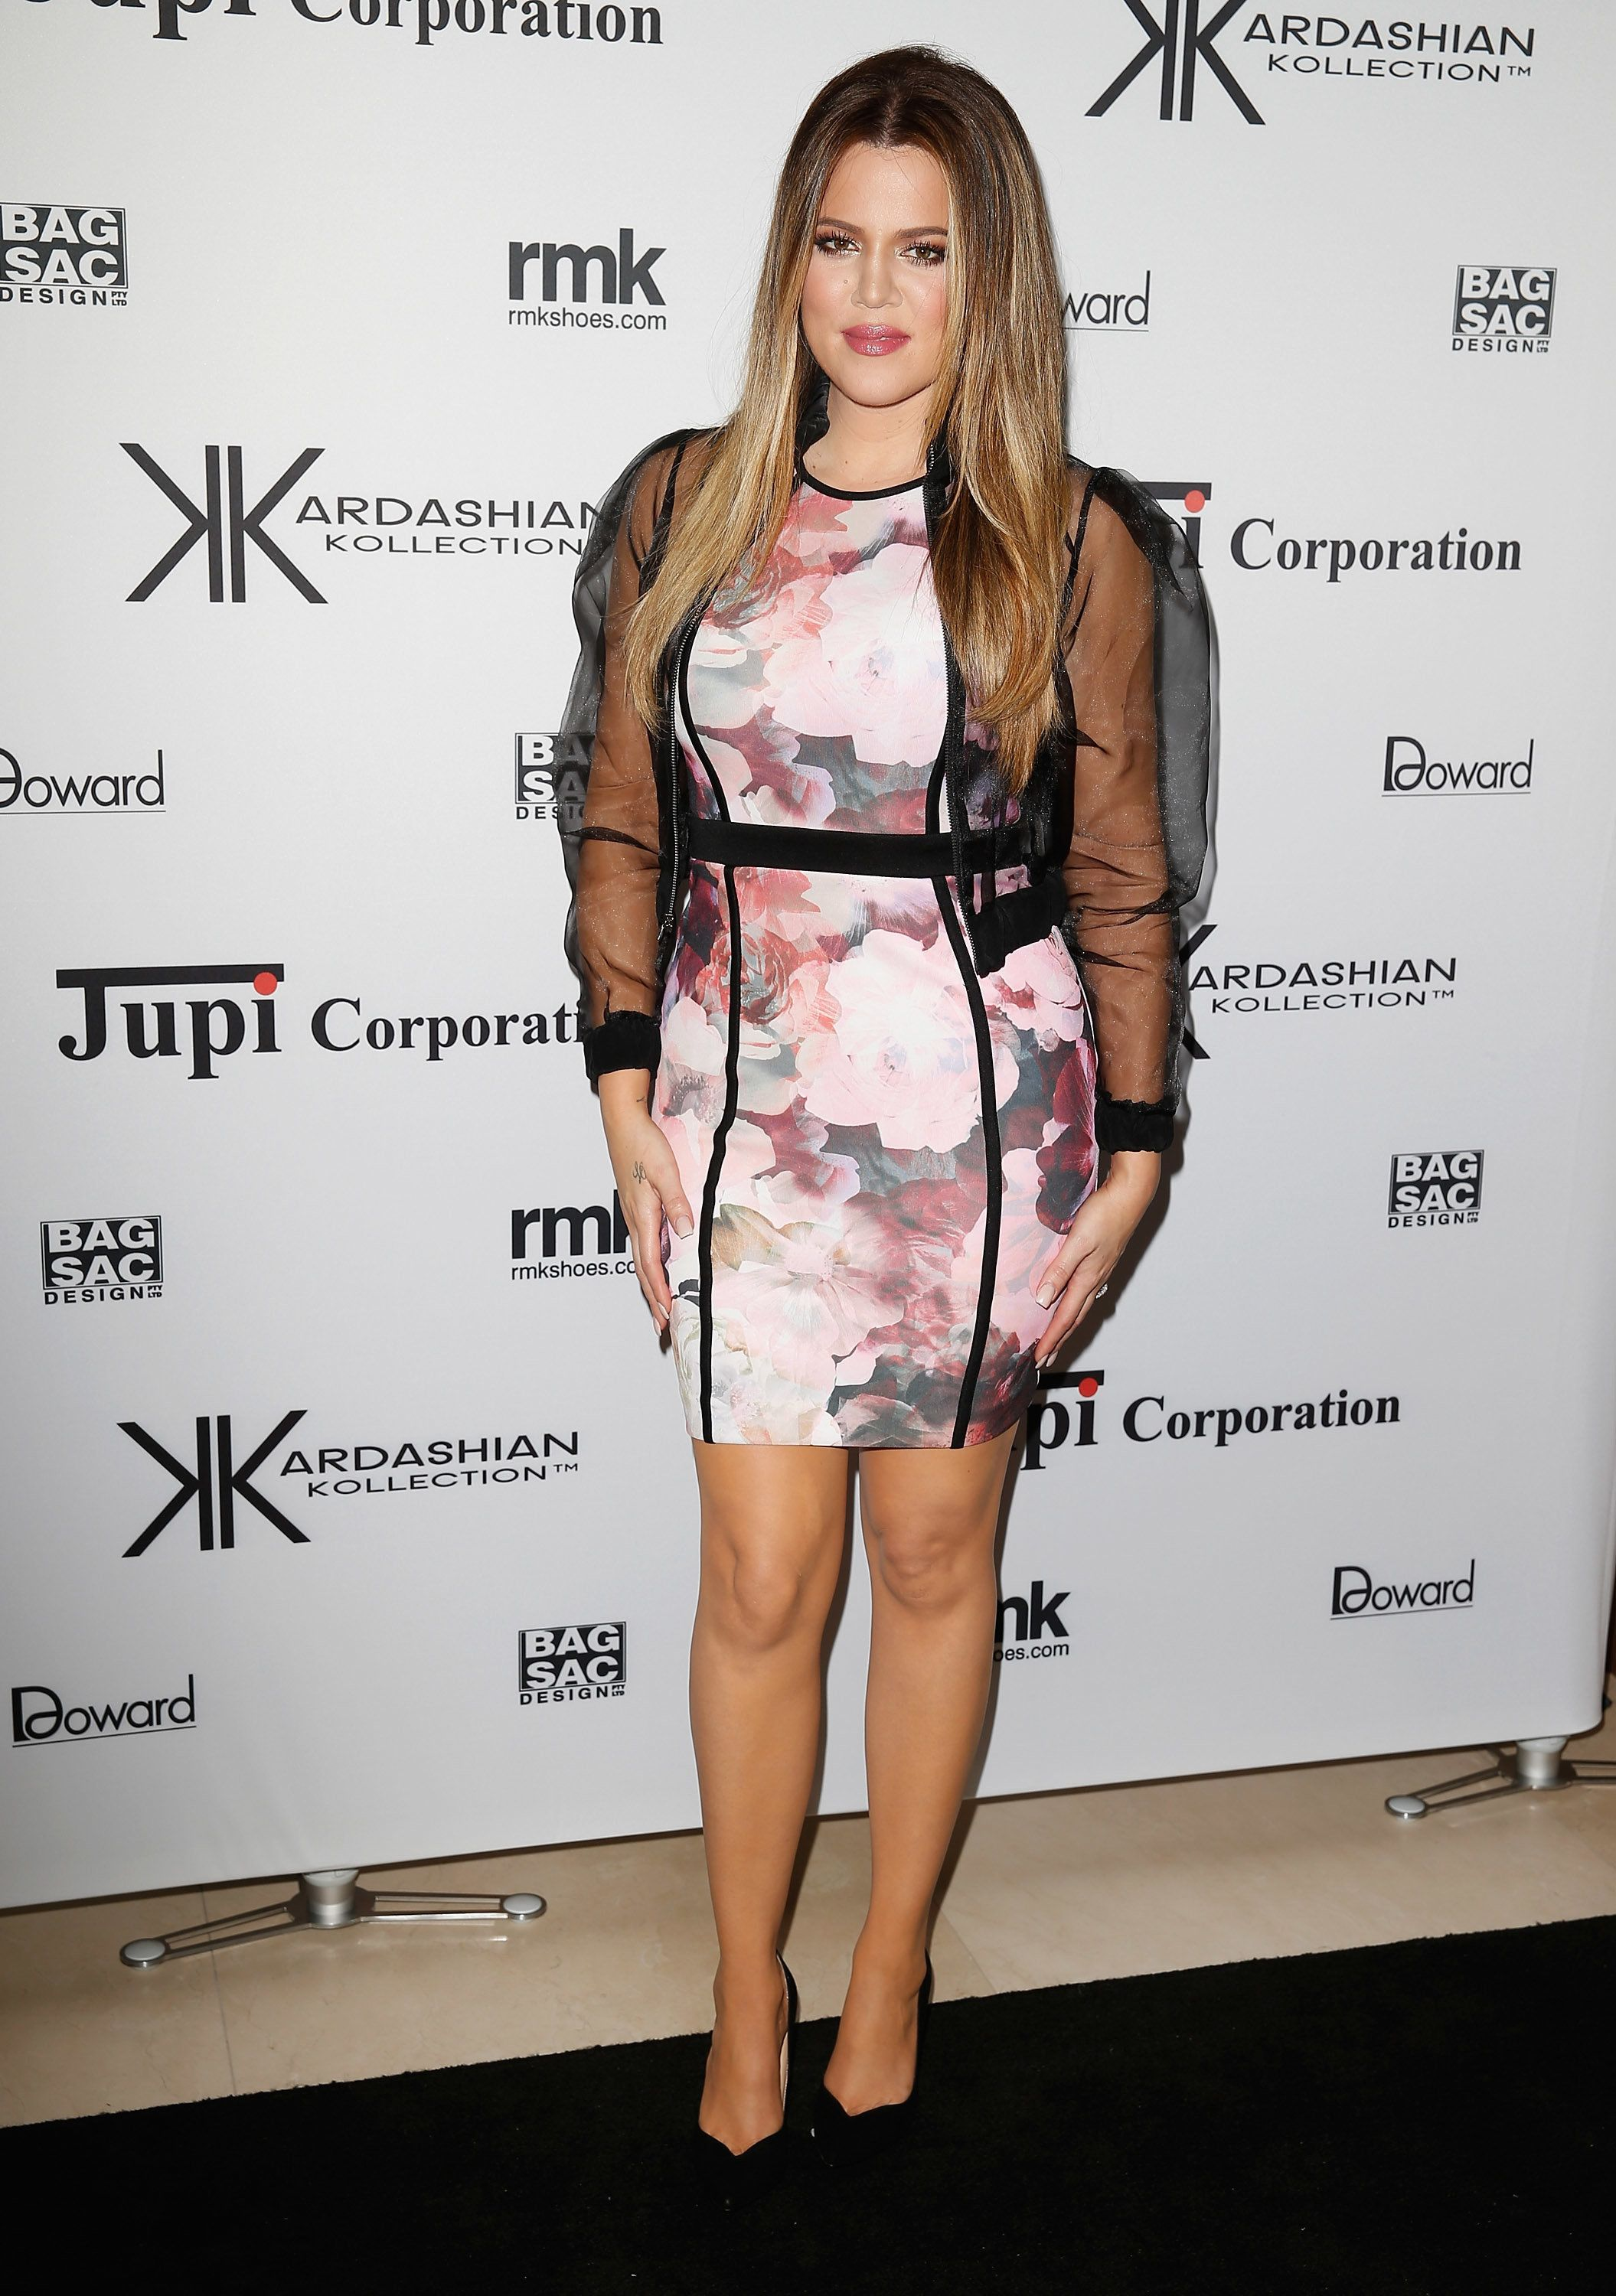 At the Kardashian Kollection cocktail party at the Park Hyatt Guest House in Sydney.